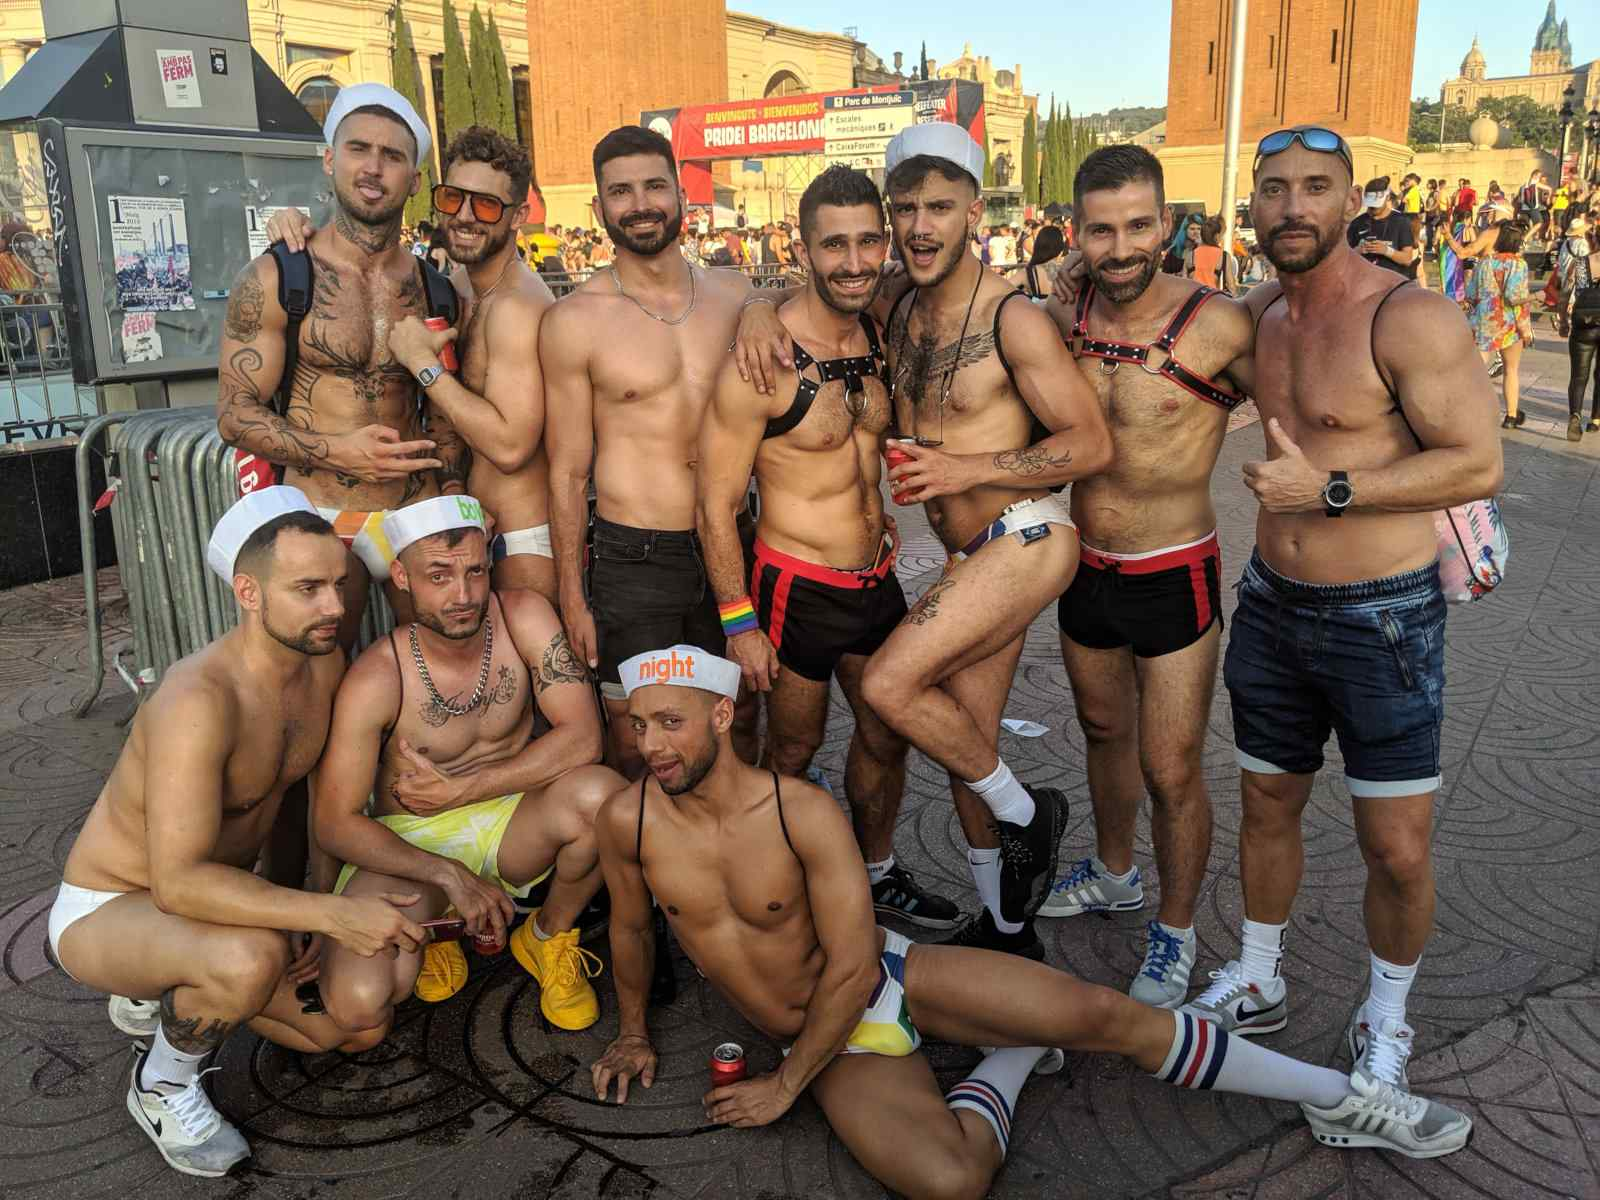 Barcelona's Pride parade ends up in Plaza Espana with a big fun concert and is one of the best to experience in Spain